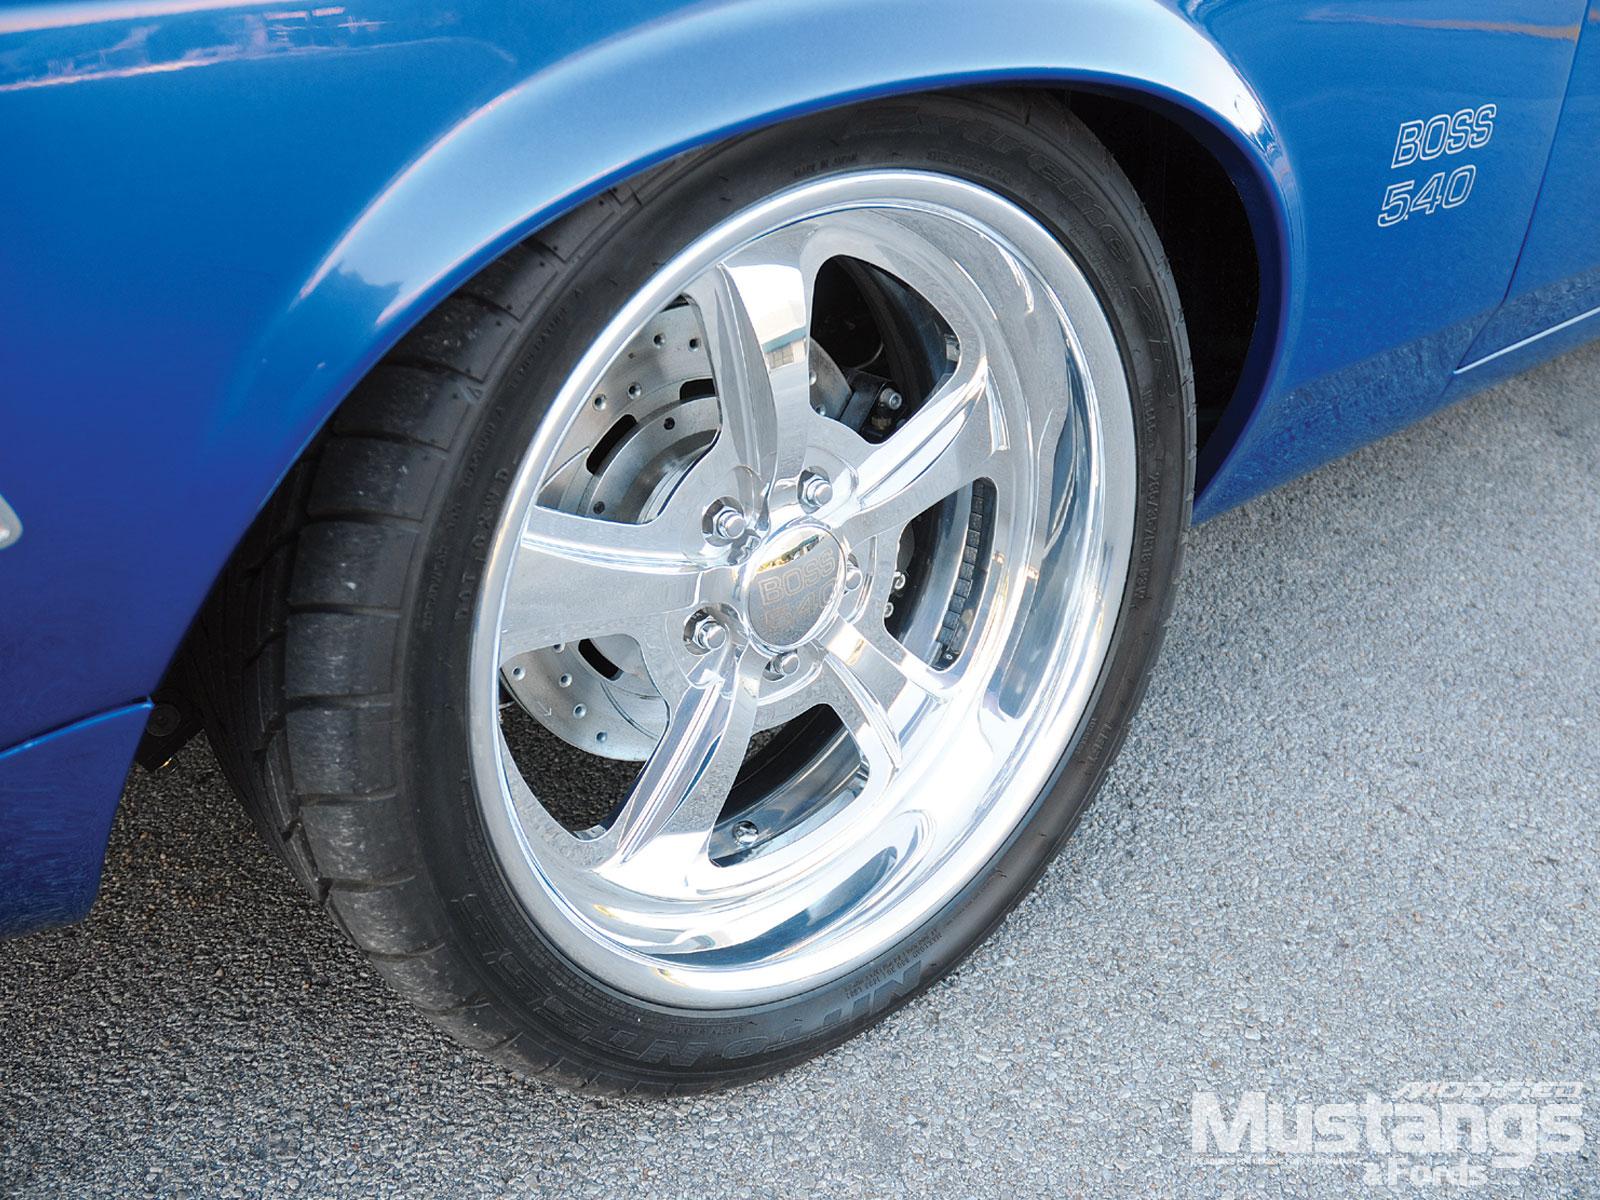 1970 Mustang Sportroof Rear Wheels